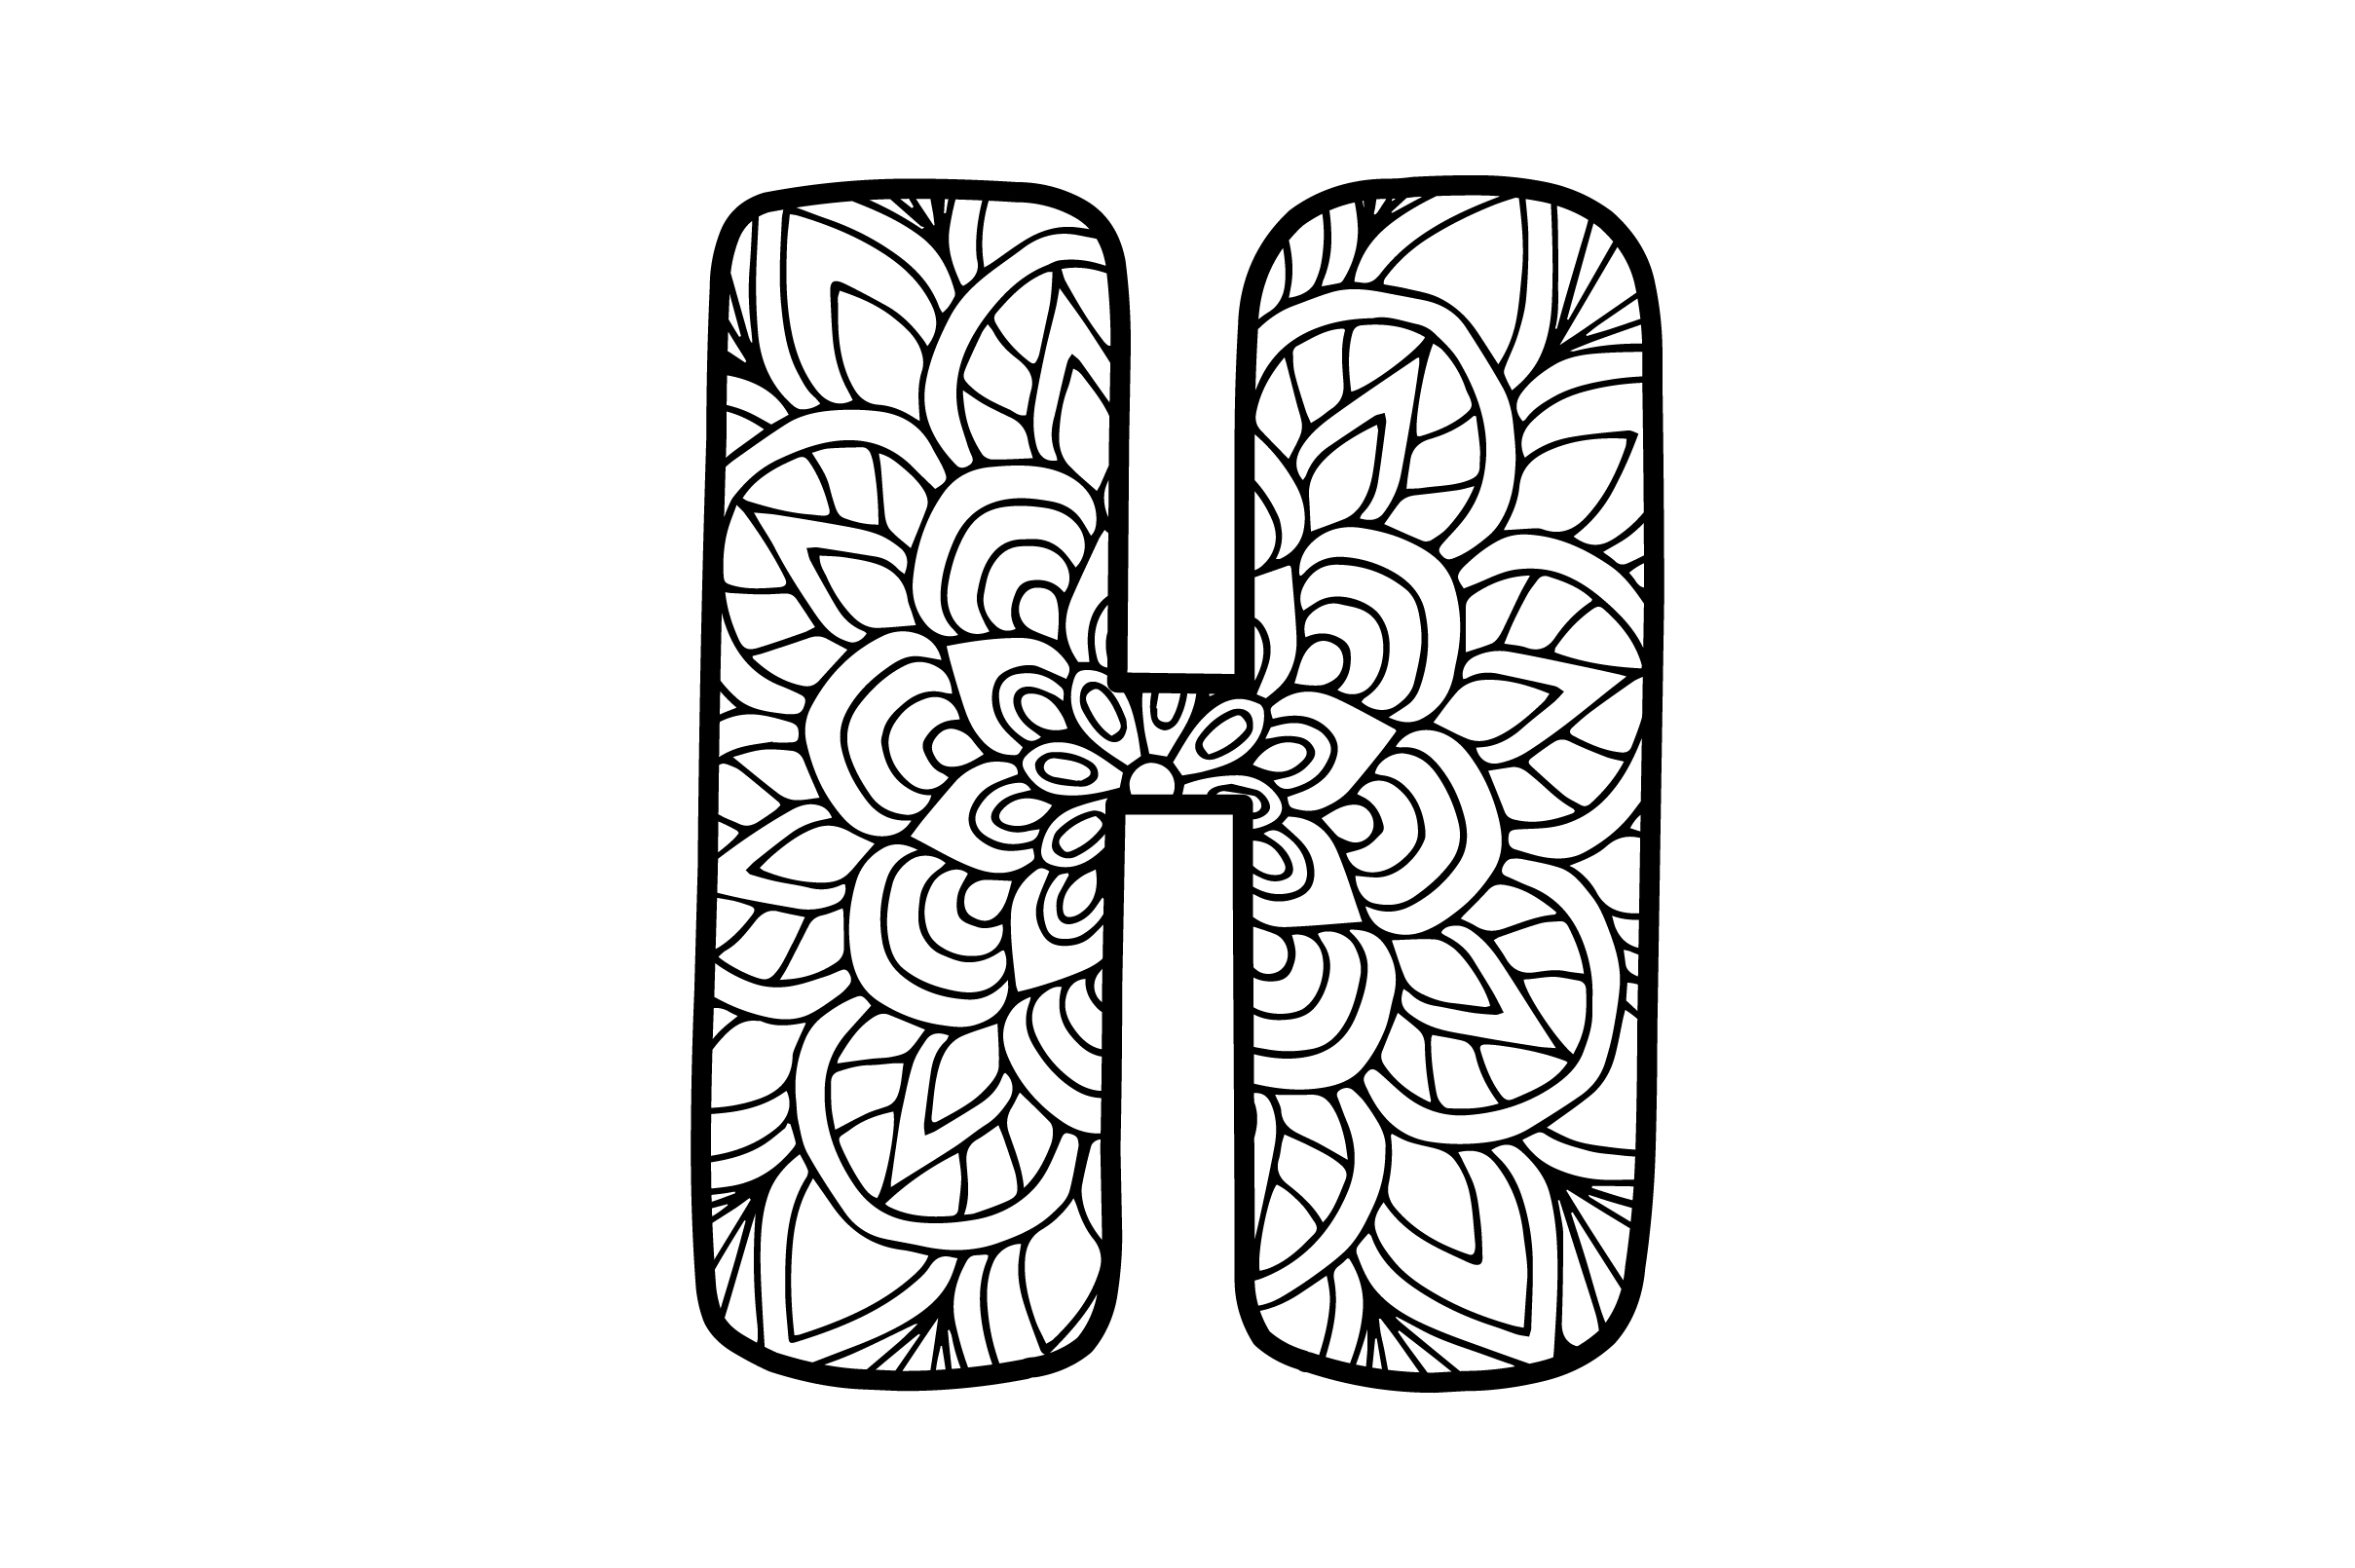 Download Free Mandala Alphabet H Svg Cut File By Creative Fabrica Crafts for Cricut Explore, Silhouette and other cutting machines.